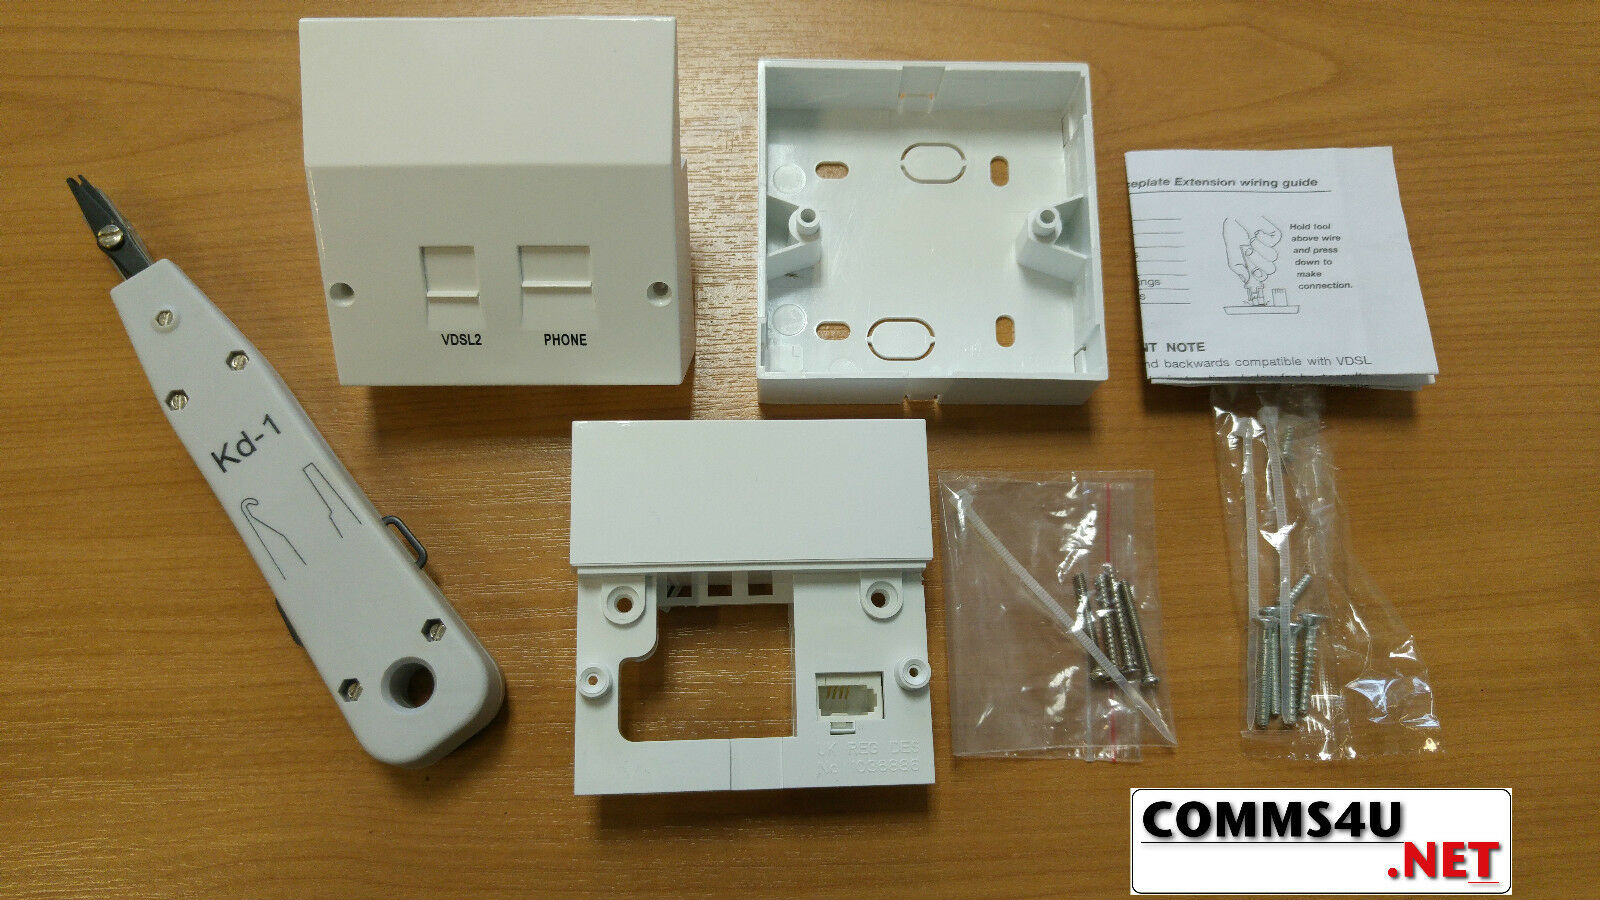 Bt Openreach Type Master Telephone Socket Nte5 Box Tool Vdsl2 Adsl Line Wiring Filter Kit 1 Of 4free Shipping